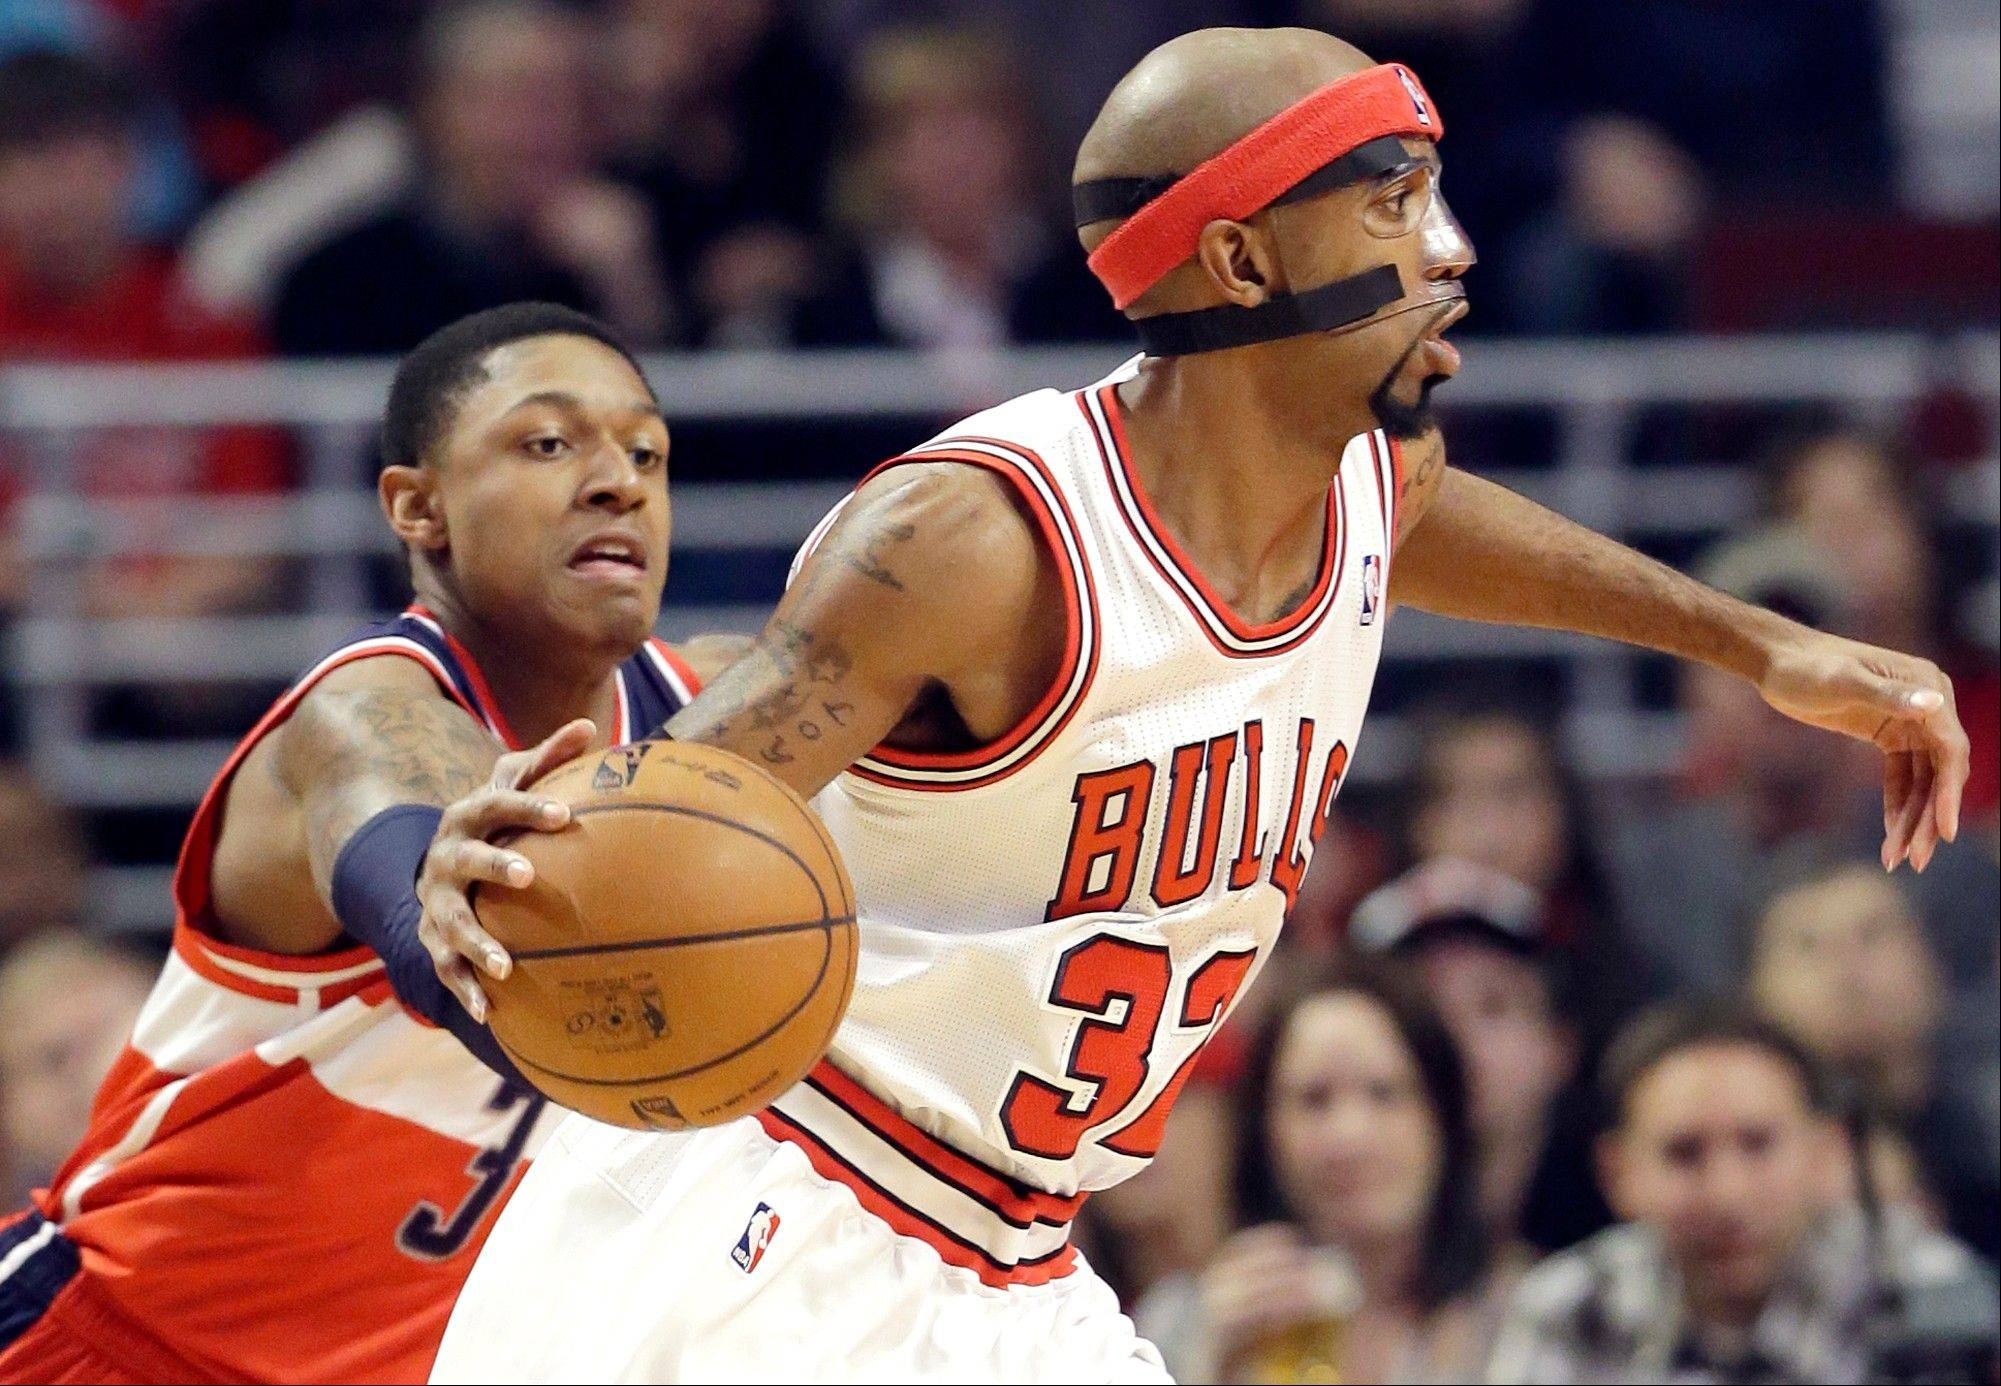 Chicago Bulls guard Richard Hamilton, right, looks to a pass as Washington Wizards guard Bradley Beal defends during the first half of an NBA basketball game in Chicago on Saturday, Dec. 29, 2012.